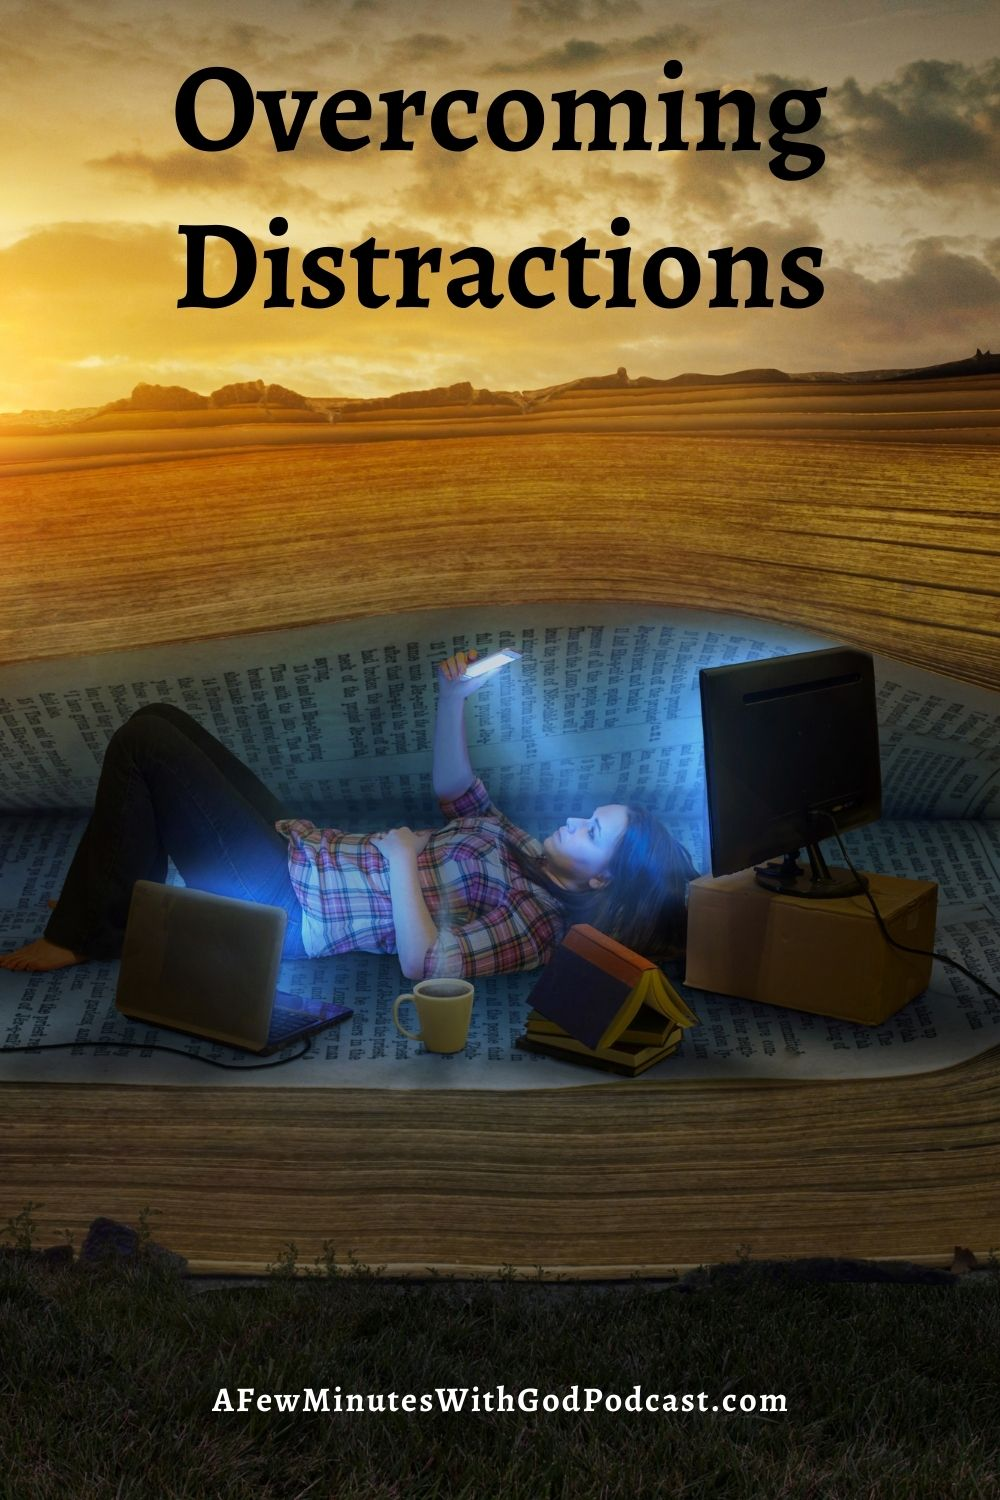 Overcoming Distractions